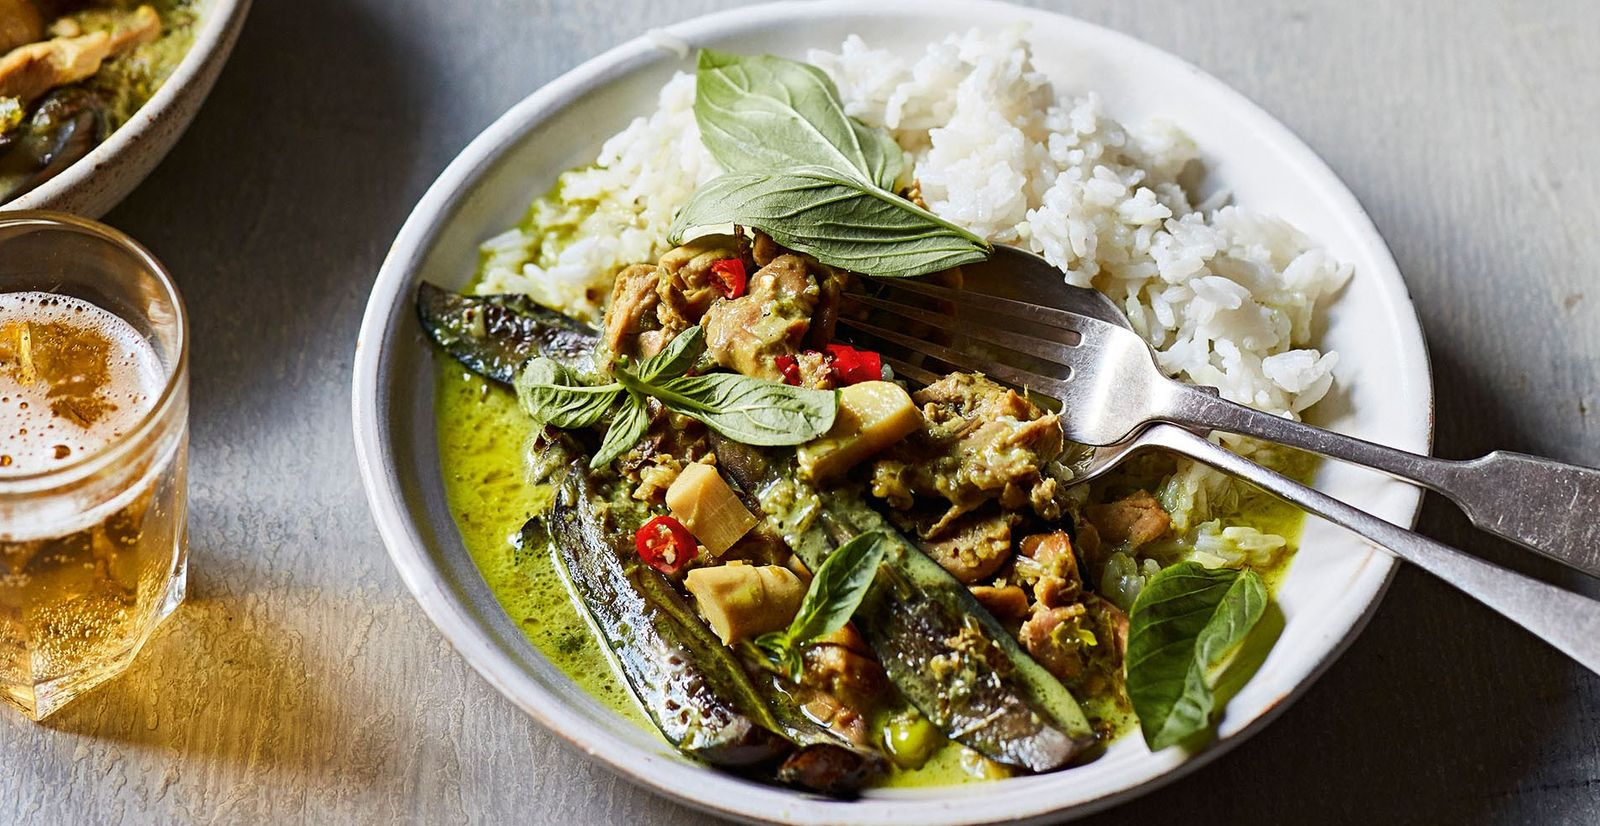 How to make it: Kay Plunkett-Hogge's green chicken curry